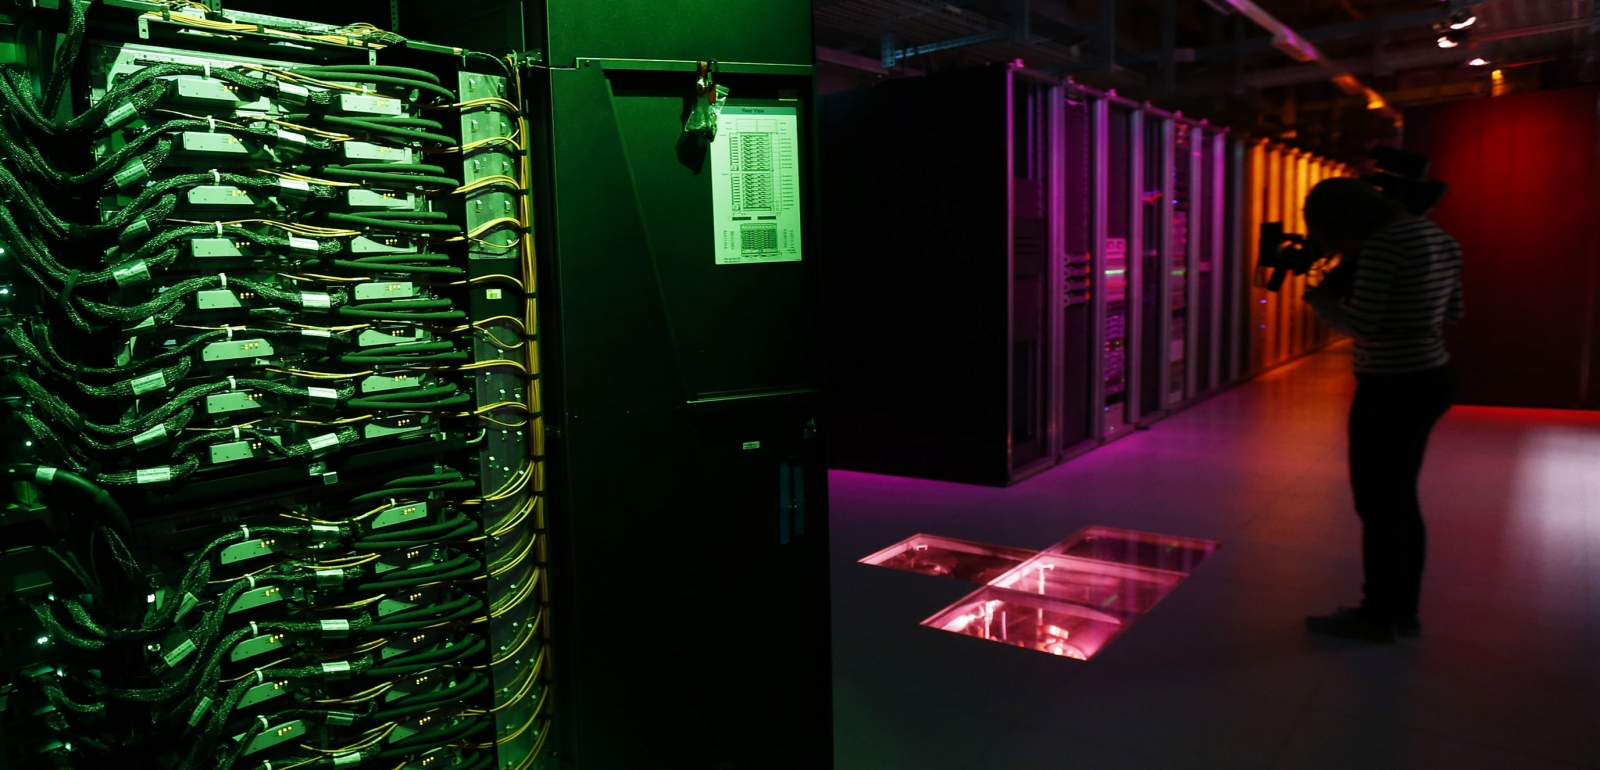 Japan to build fastest supercomputer